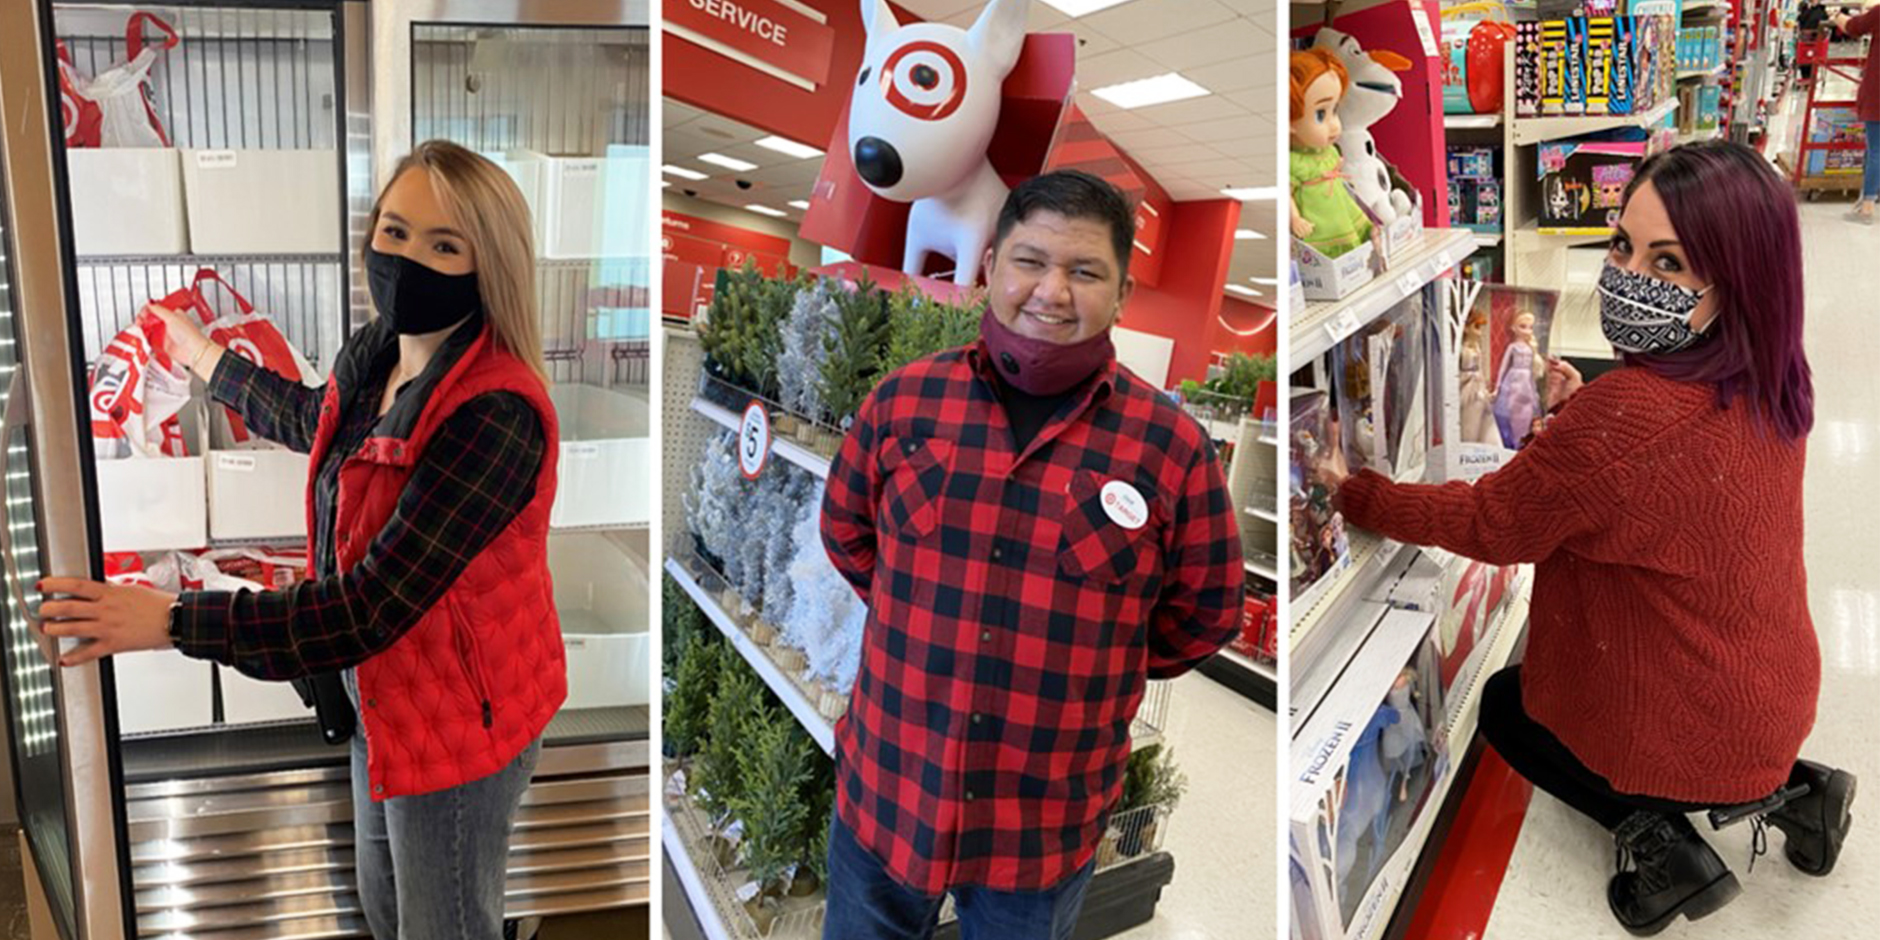 Three team members in red and denim outfits and masks perform their Target roles on the sales floor.